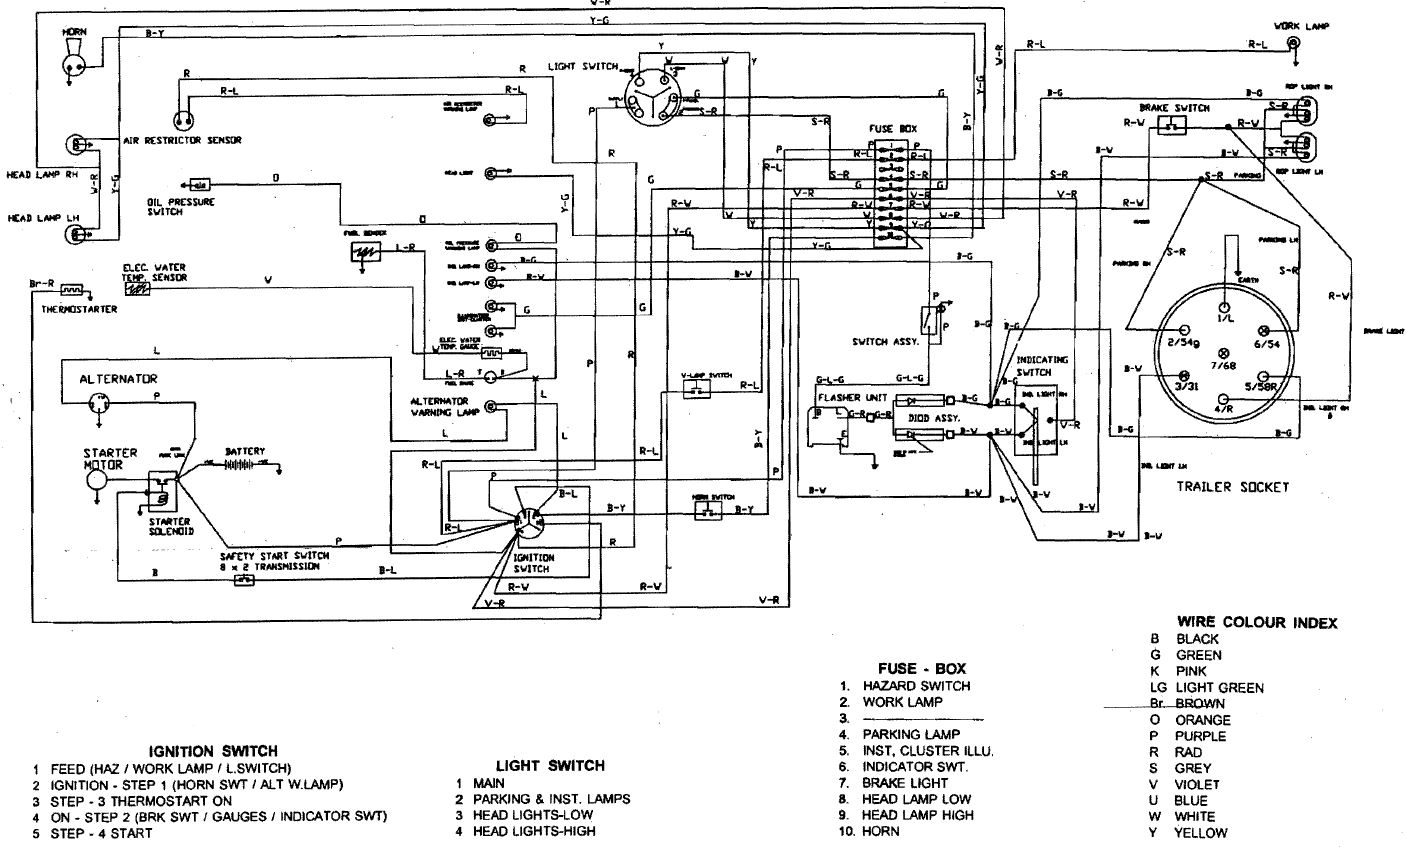 20158463319_b82d524c3d_o ignition switch wiring diagram,Kubota Bx Tractor Wiring Diagrams Headlights